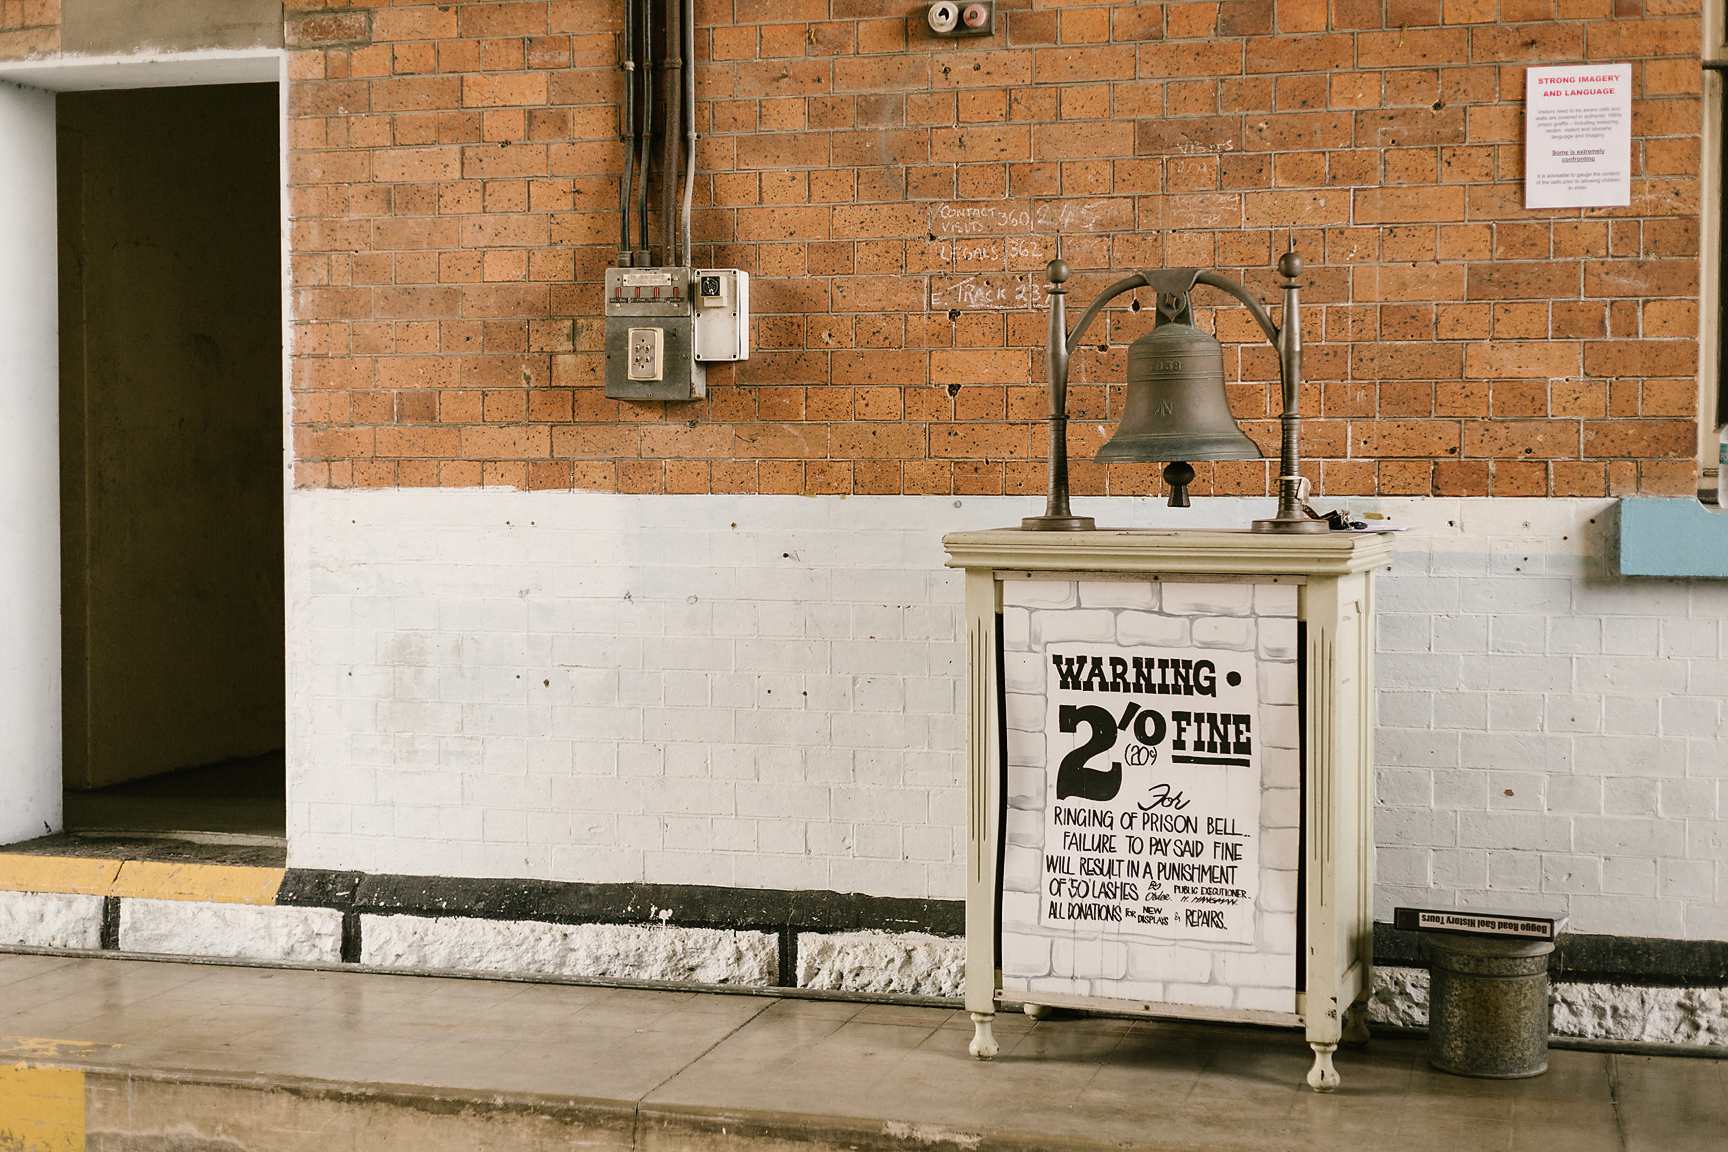 This bell served a dual purpose: a call to attention for the prisoners and an alarm clock for the local neighbourhood.